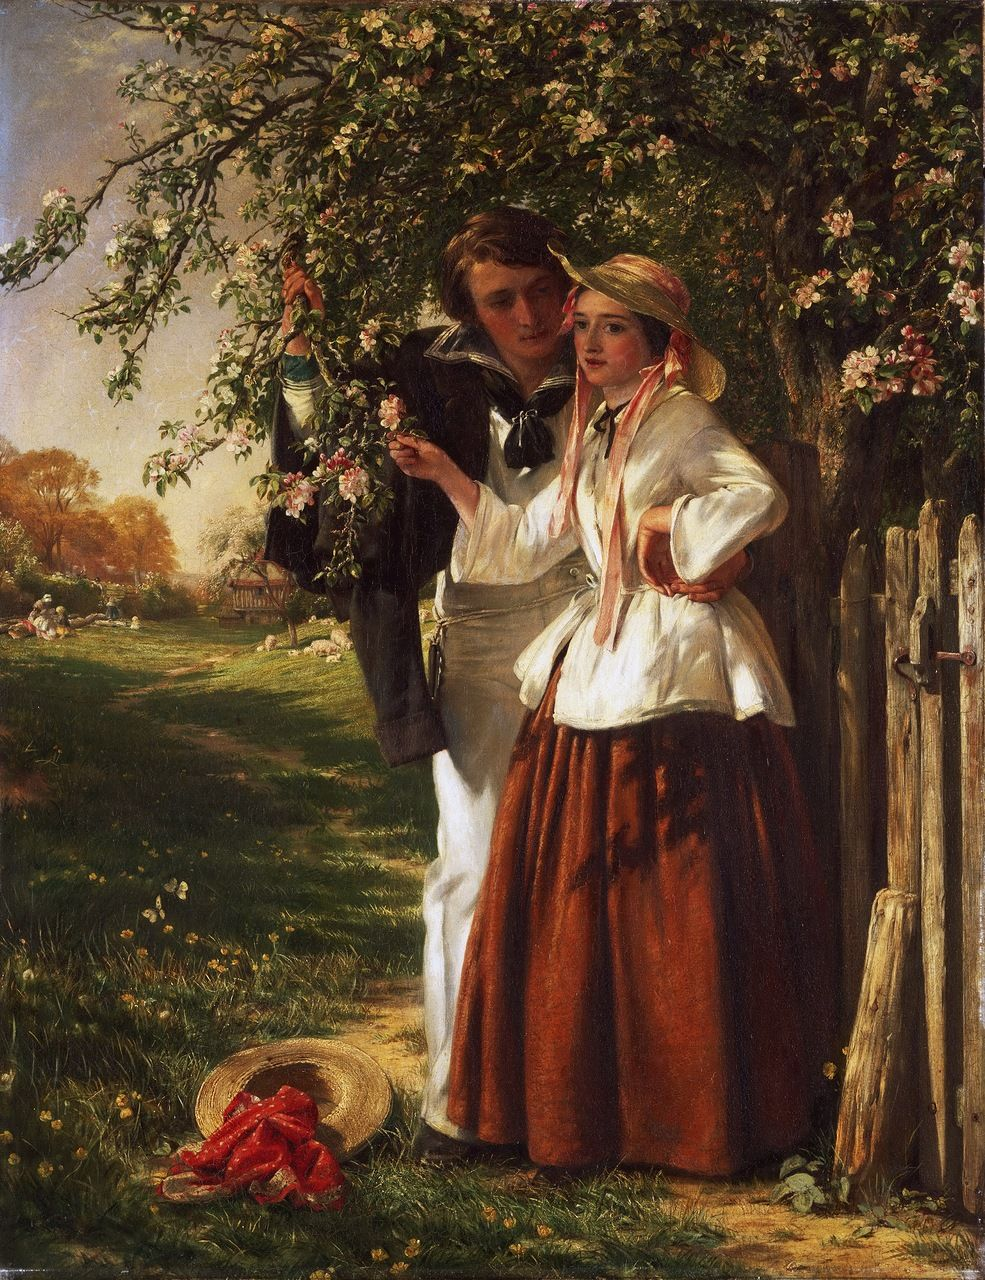 .:. John Callcott Horsley, English, 1817-1903 -- Lovers under a Blossom Tree